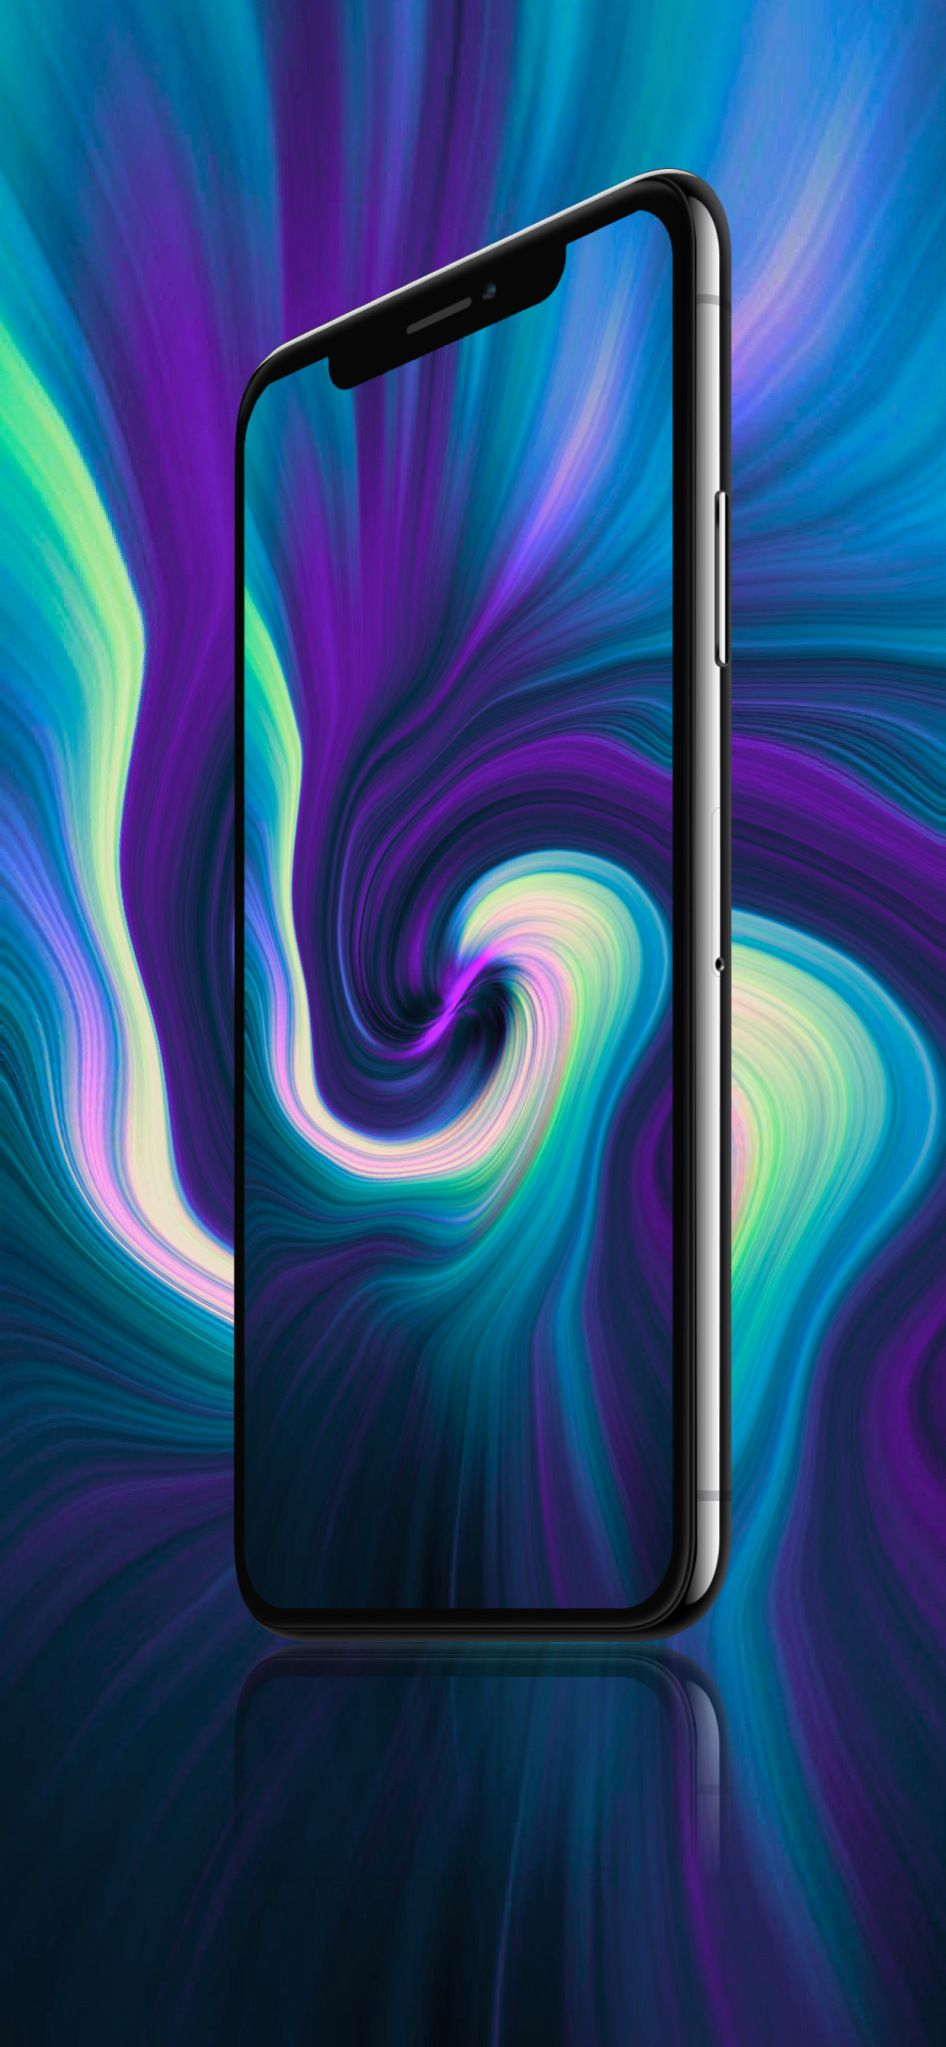 Pin on Cool wallpapers for phones